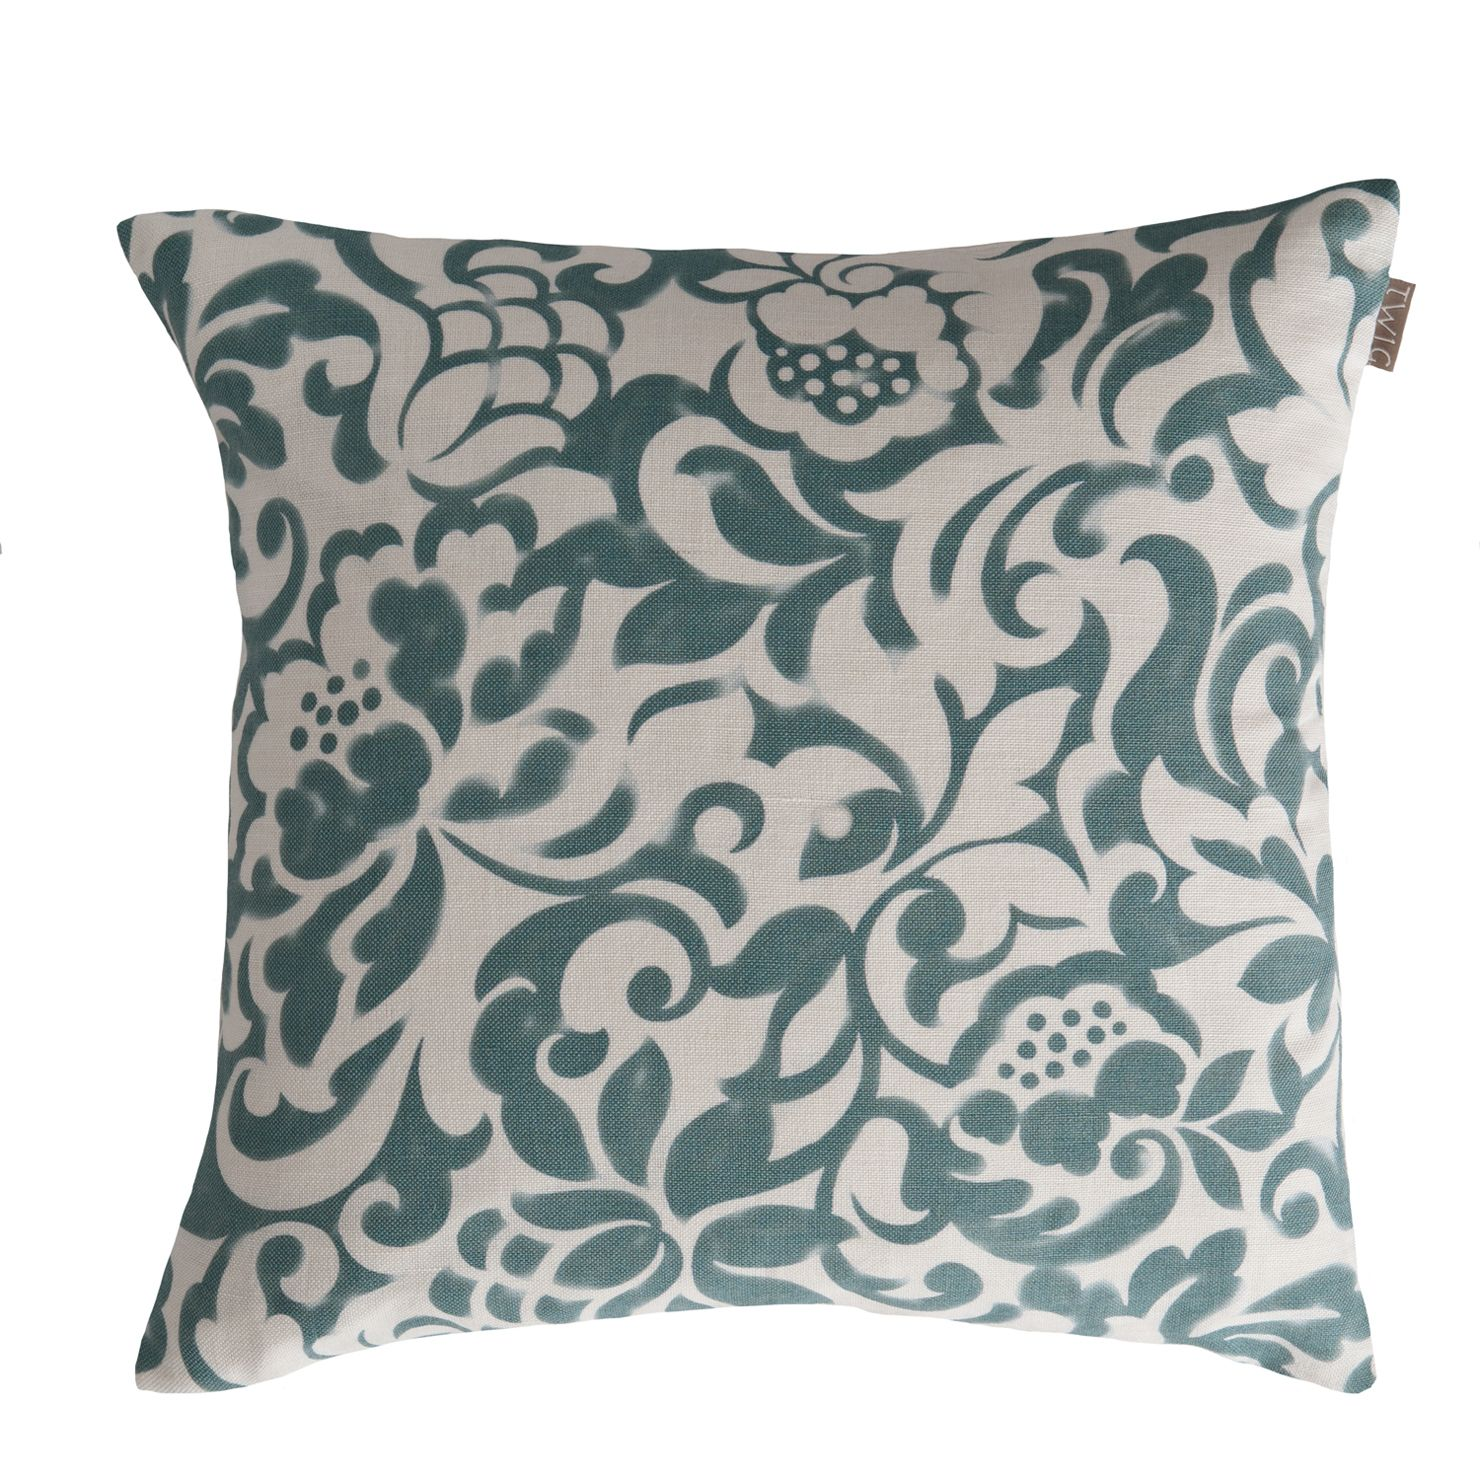 ACHICA Twig Ollie Teal Cushion Teal cushions, Duck egg